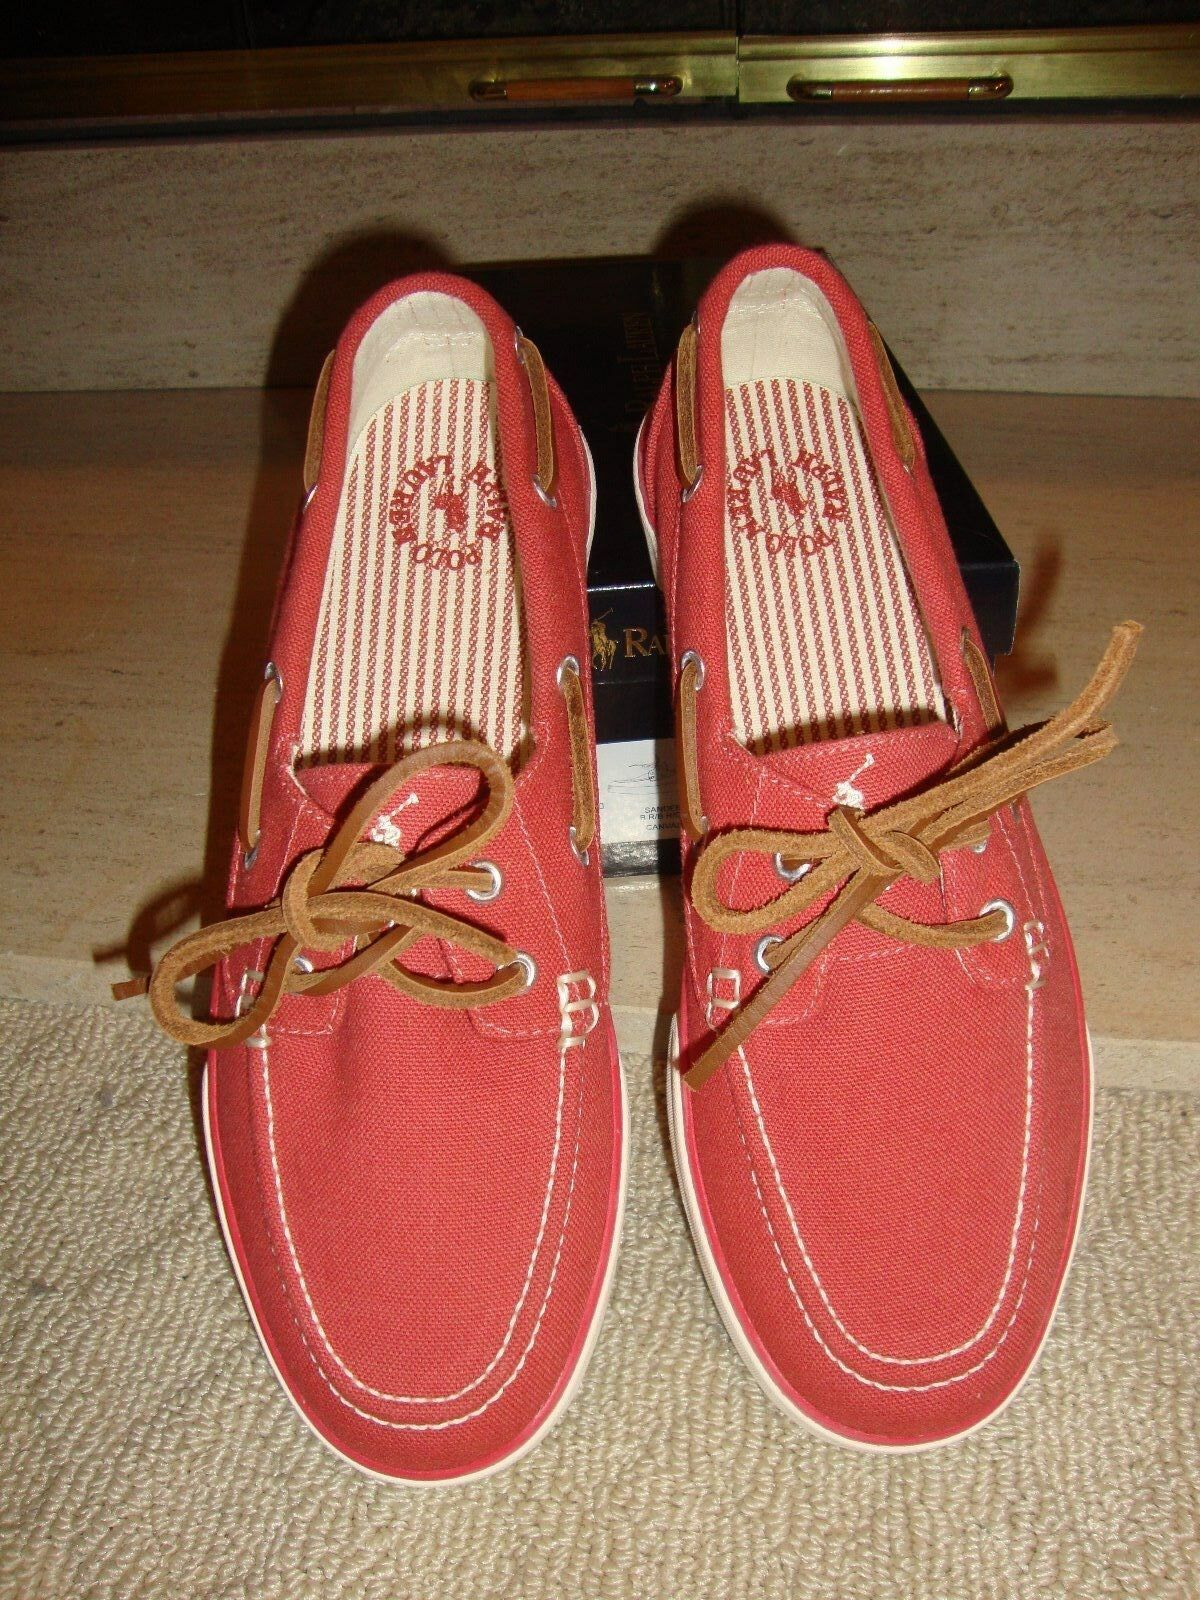 SPORTY NWB POLO RALPH LAUREN CASUAL SLIP ON SHOES IN RED